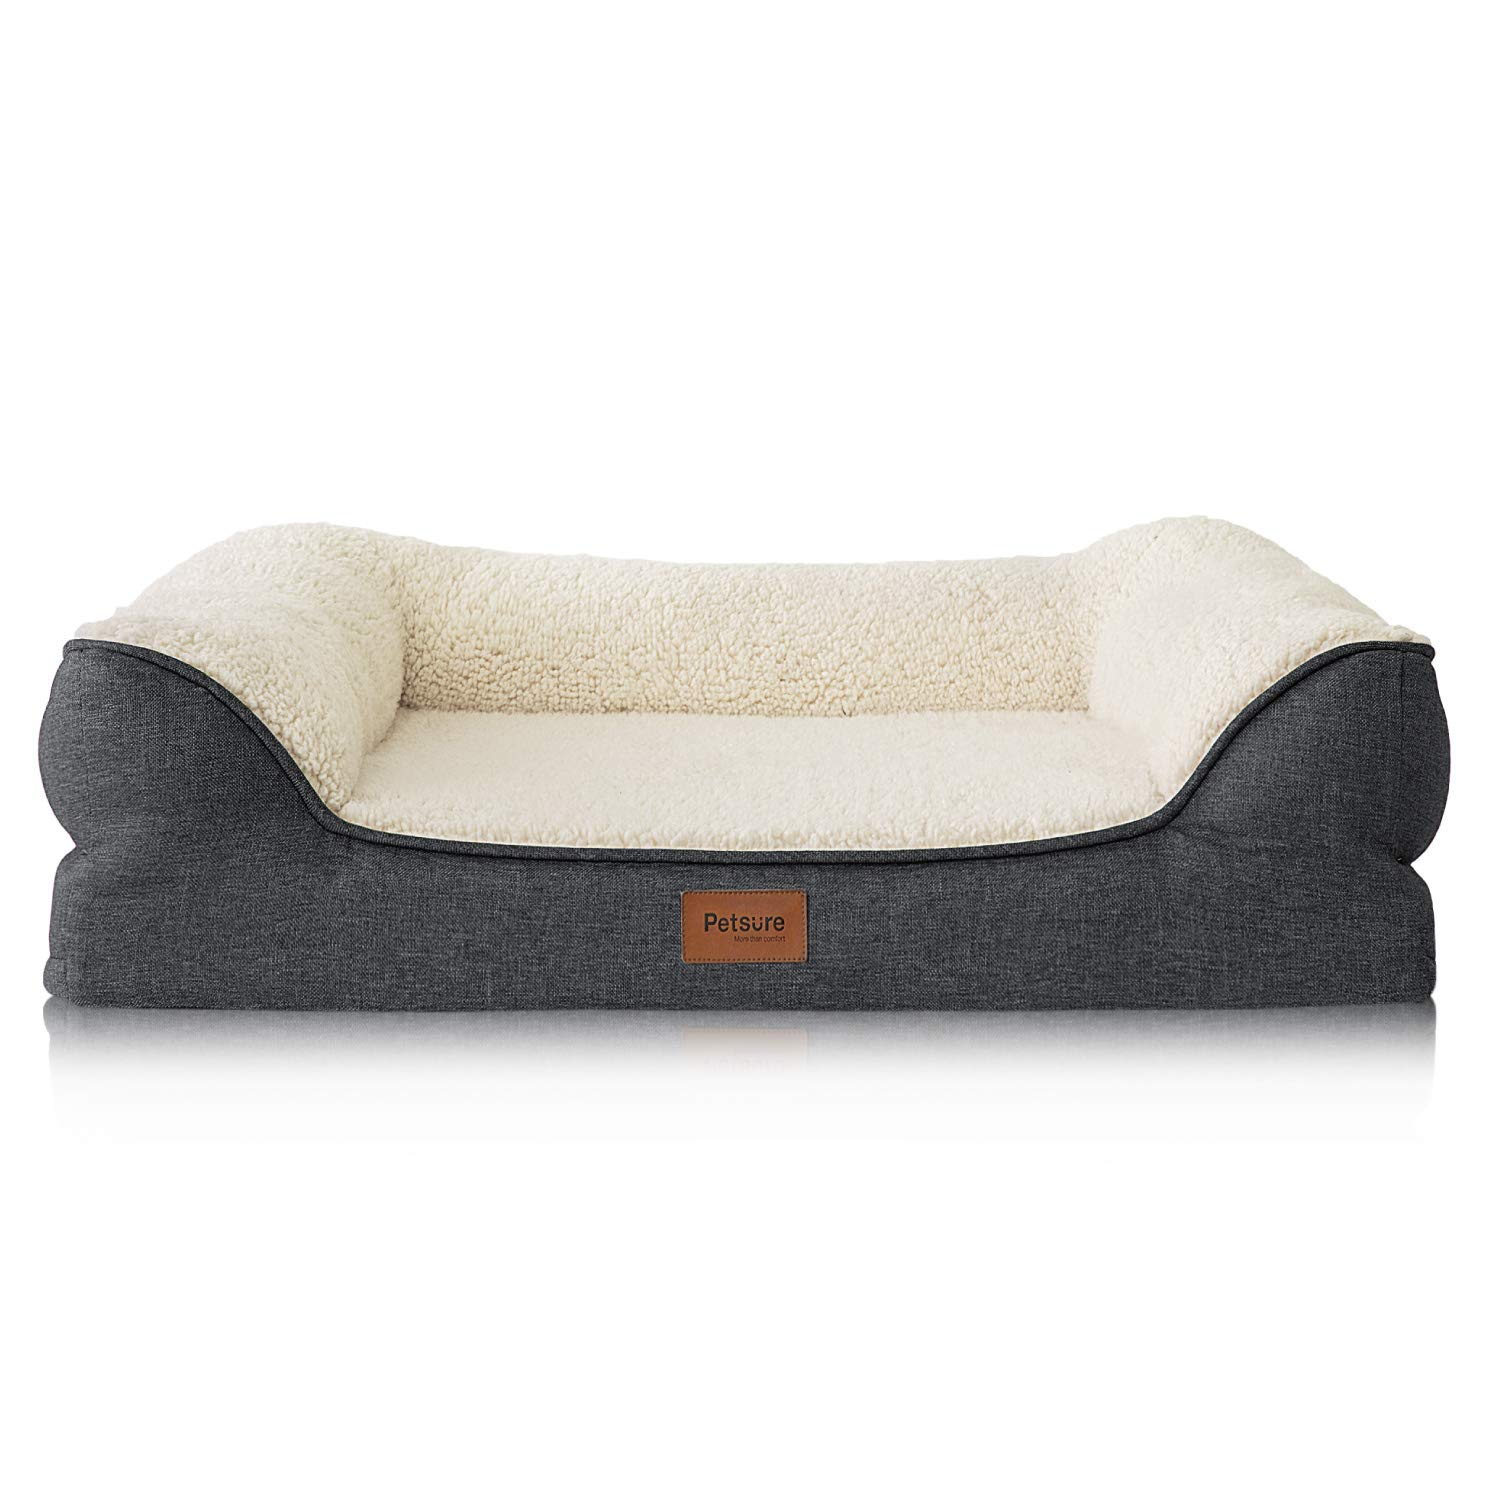 Petsure Orthopedic Pet Sofa Beds for Small, Medium, Large Dogs & Cats - 36''x27''x7'' Large Dog Beds, Grey - Memory Foam Couch Dog Bed with Removable Washable Cover - Bolster Dog Beds, Nonskid Bottom